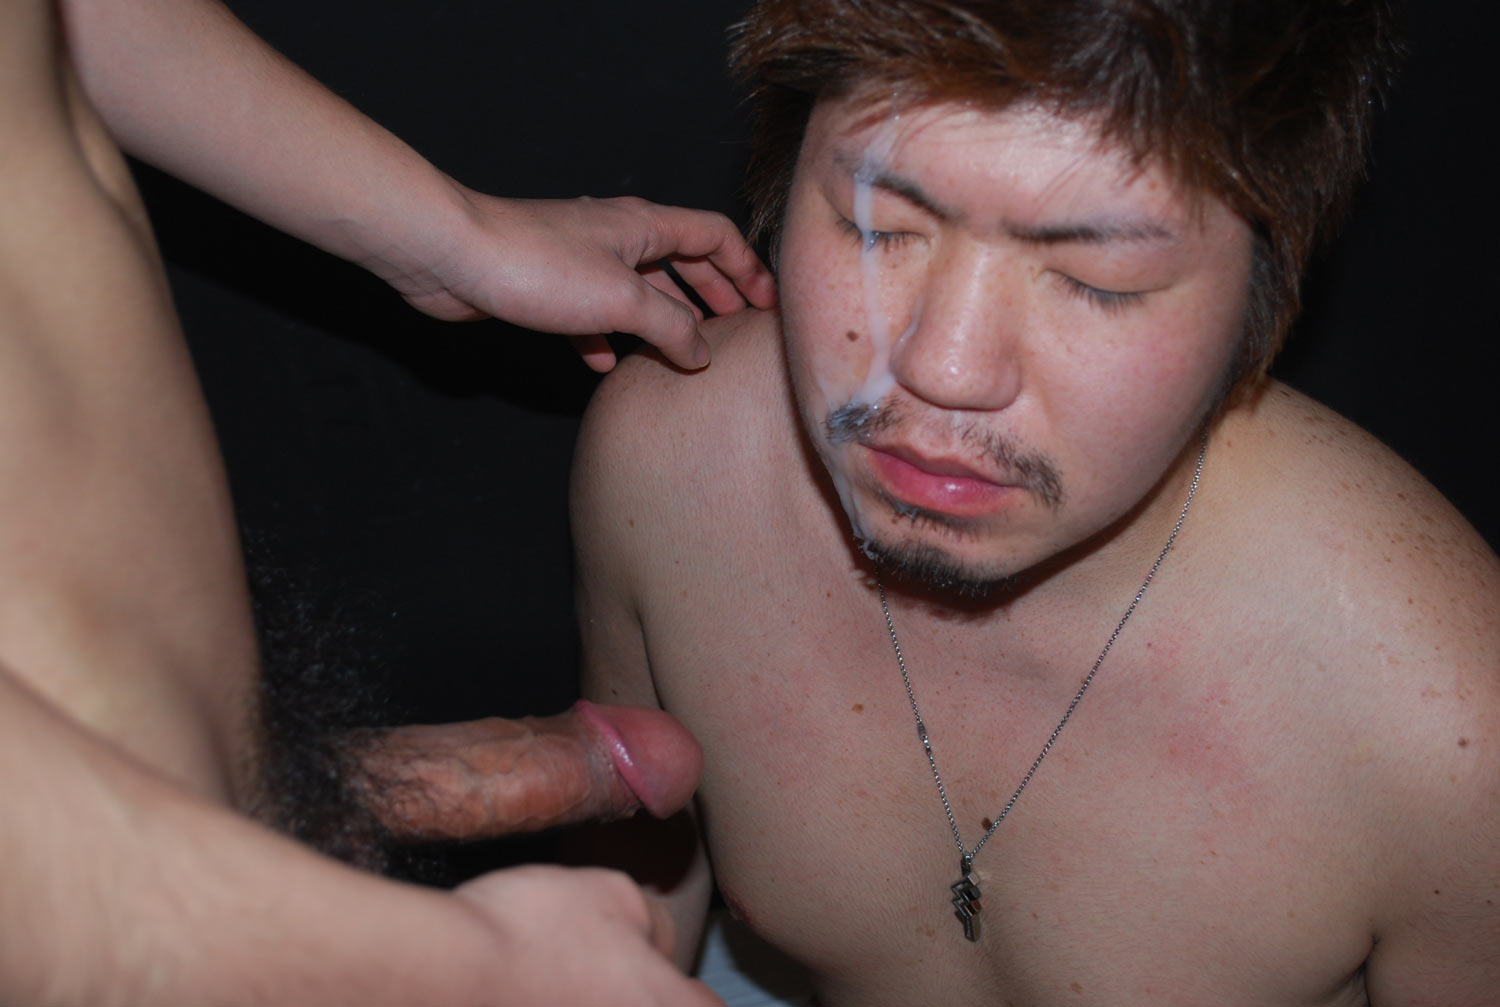 JapanBoyz Keisuke and Shinji Big Cock Asian Guys Give Each Other Cum Facial Amateur Gay Porn 13 Big Cock Asian Boys Give Each Other HUGE Cum Facials